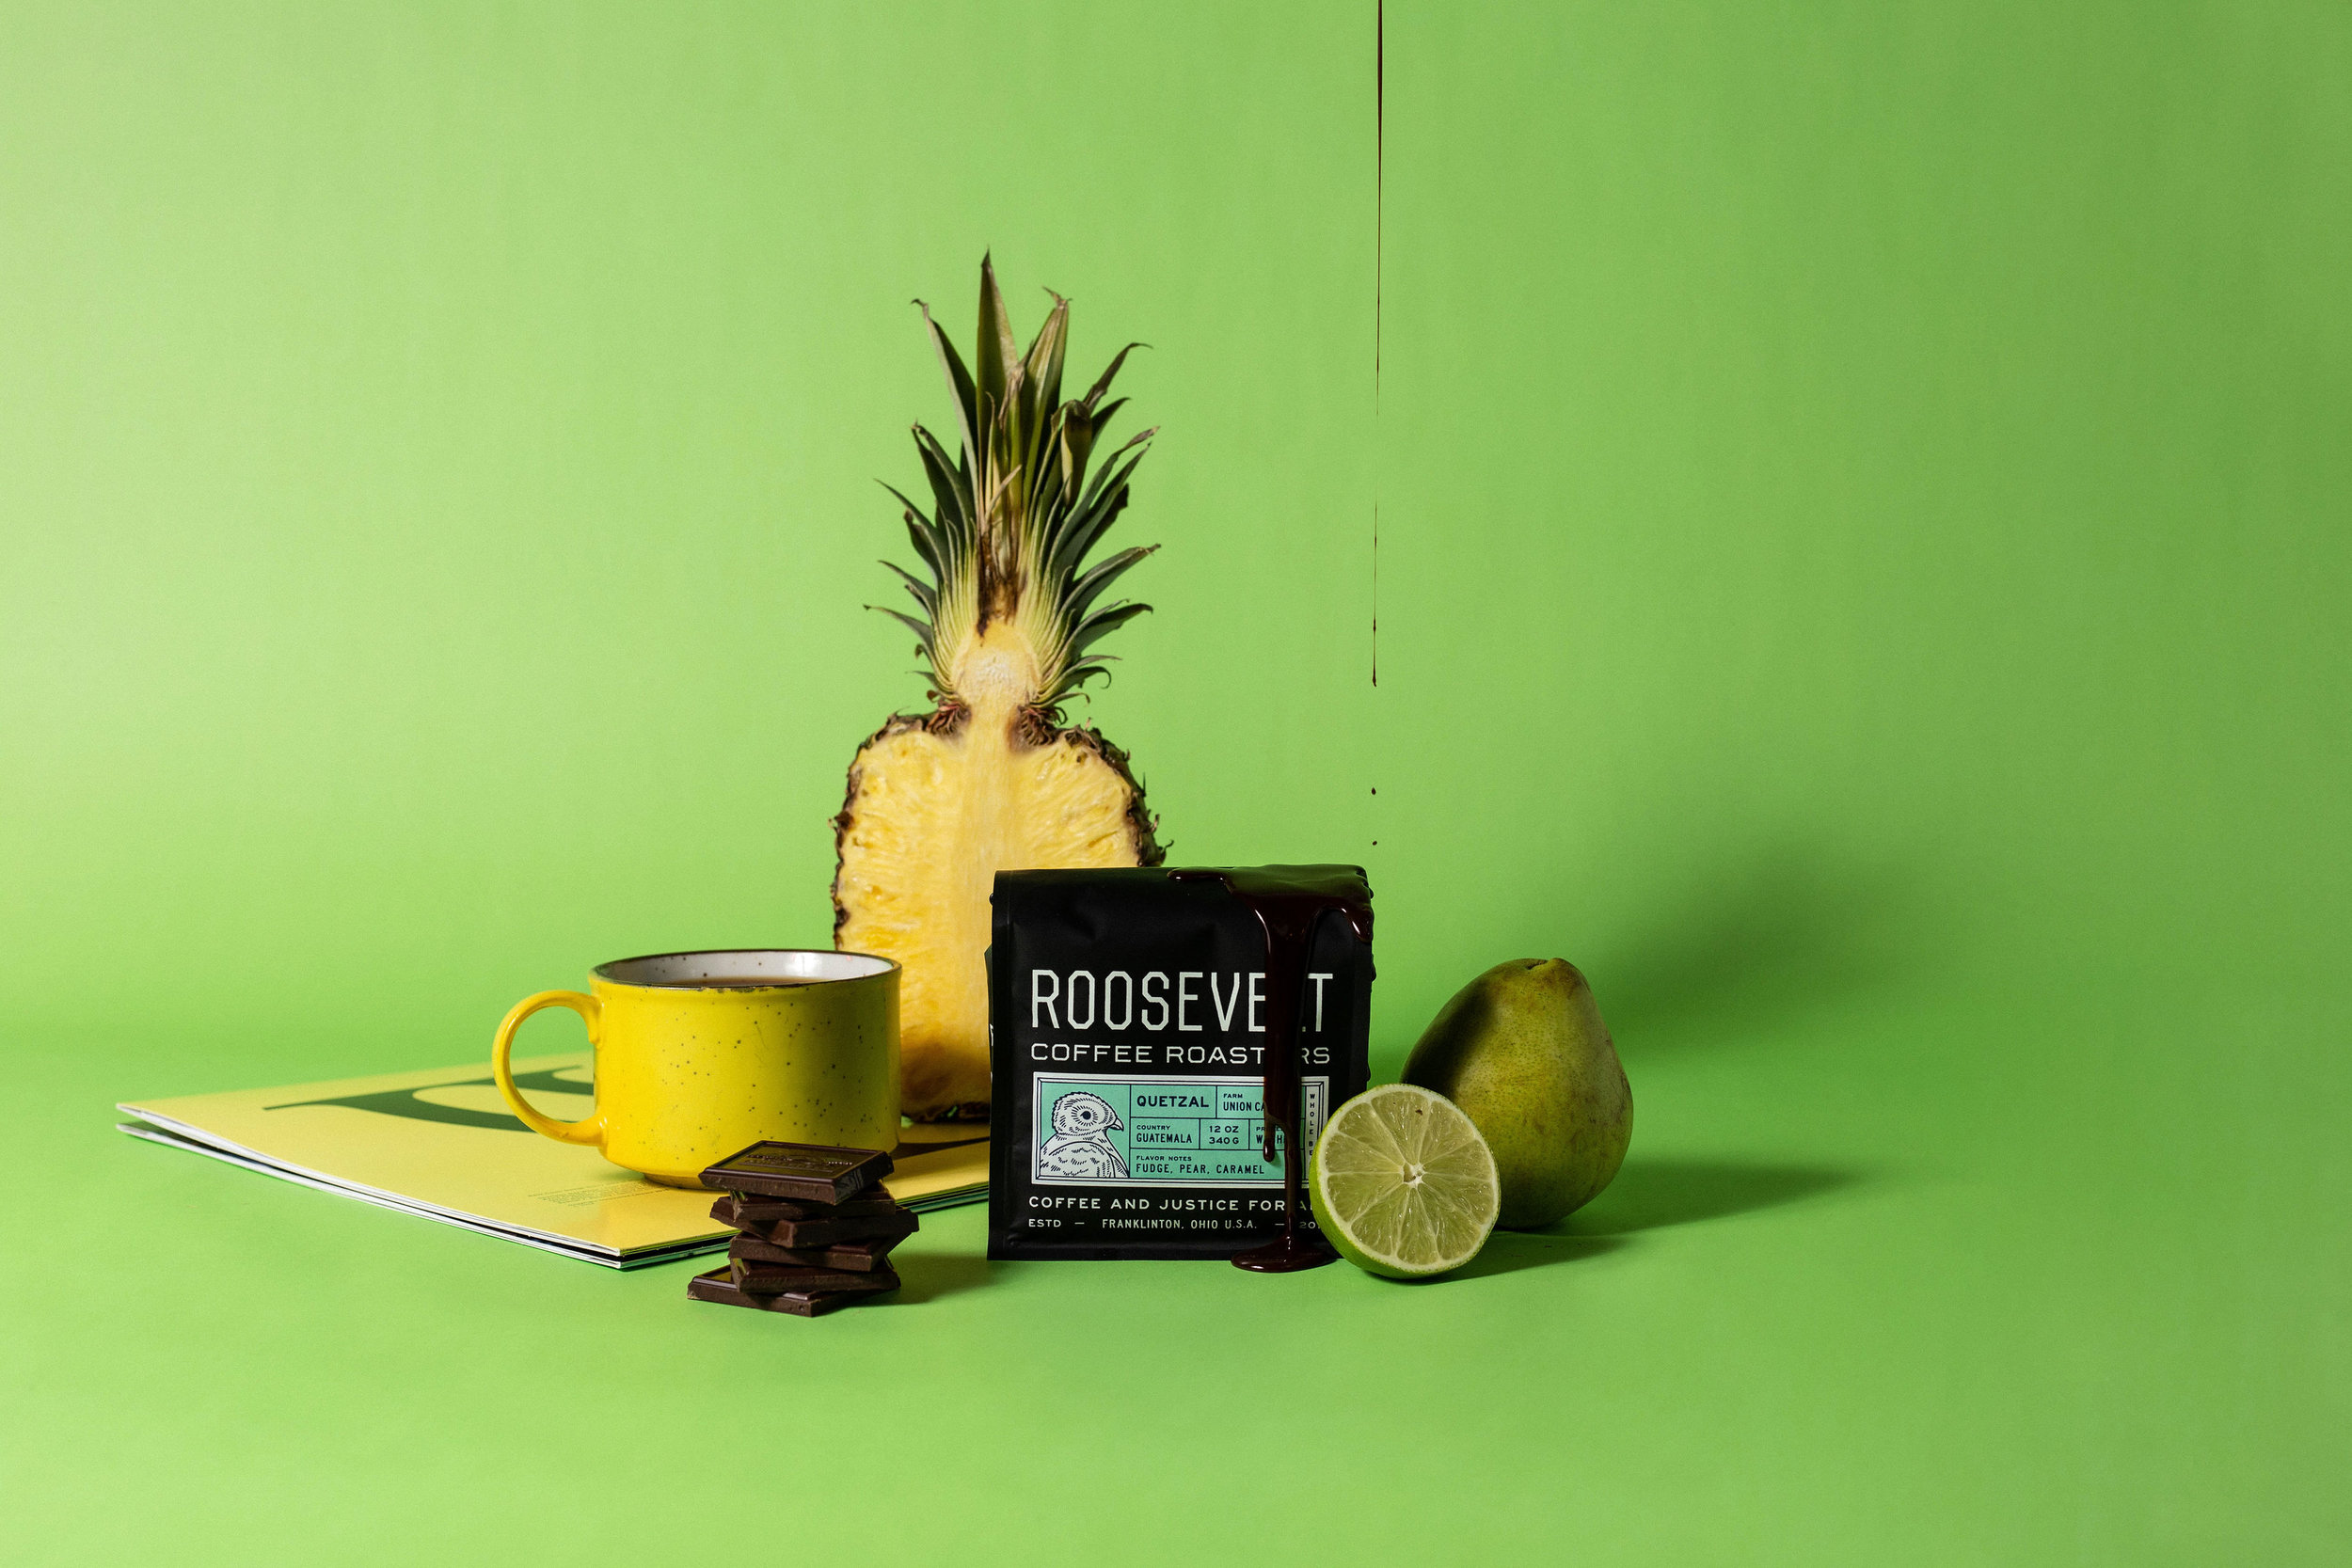 Studio Freight - Roosevelt Coffee Guatemala Packaging